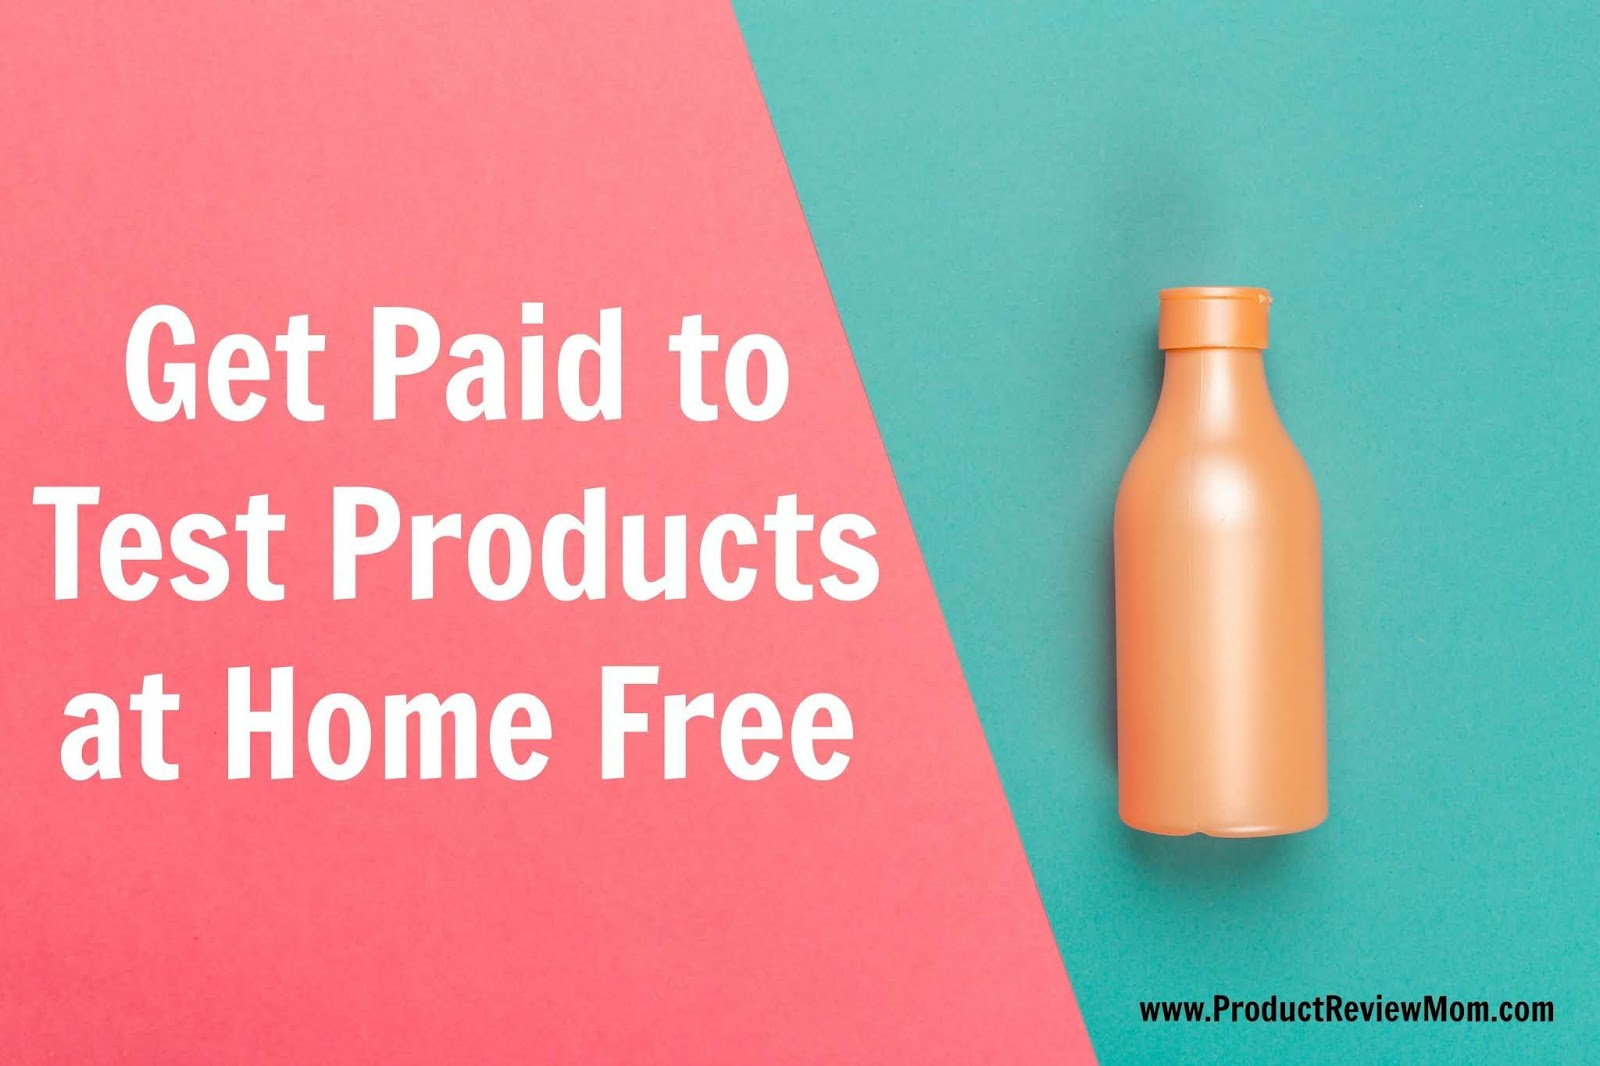 How to Get Paid to Test and Review New Products at Home Free